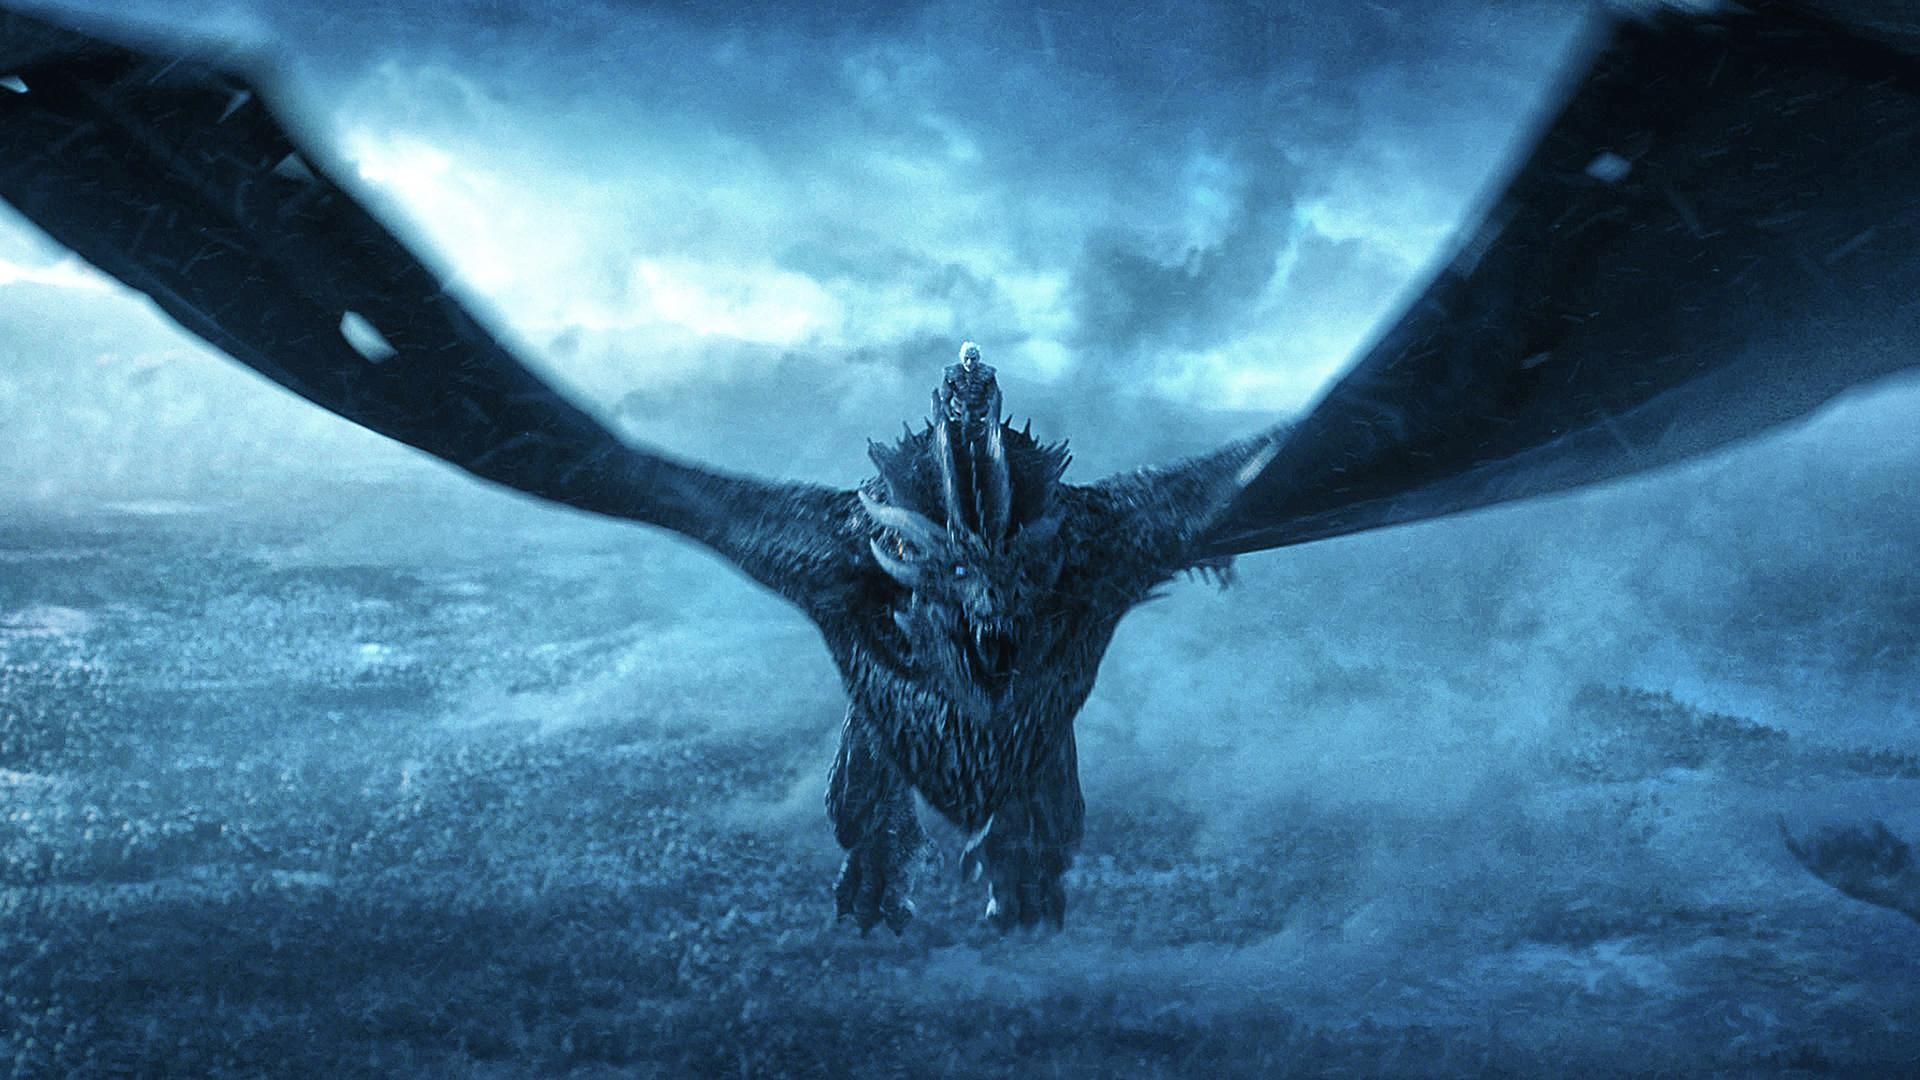 Night King 1920x1080 Wallpapers In 2019 Game Of Thrones